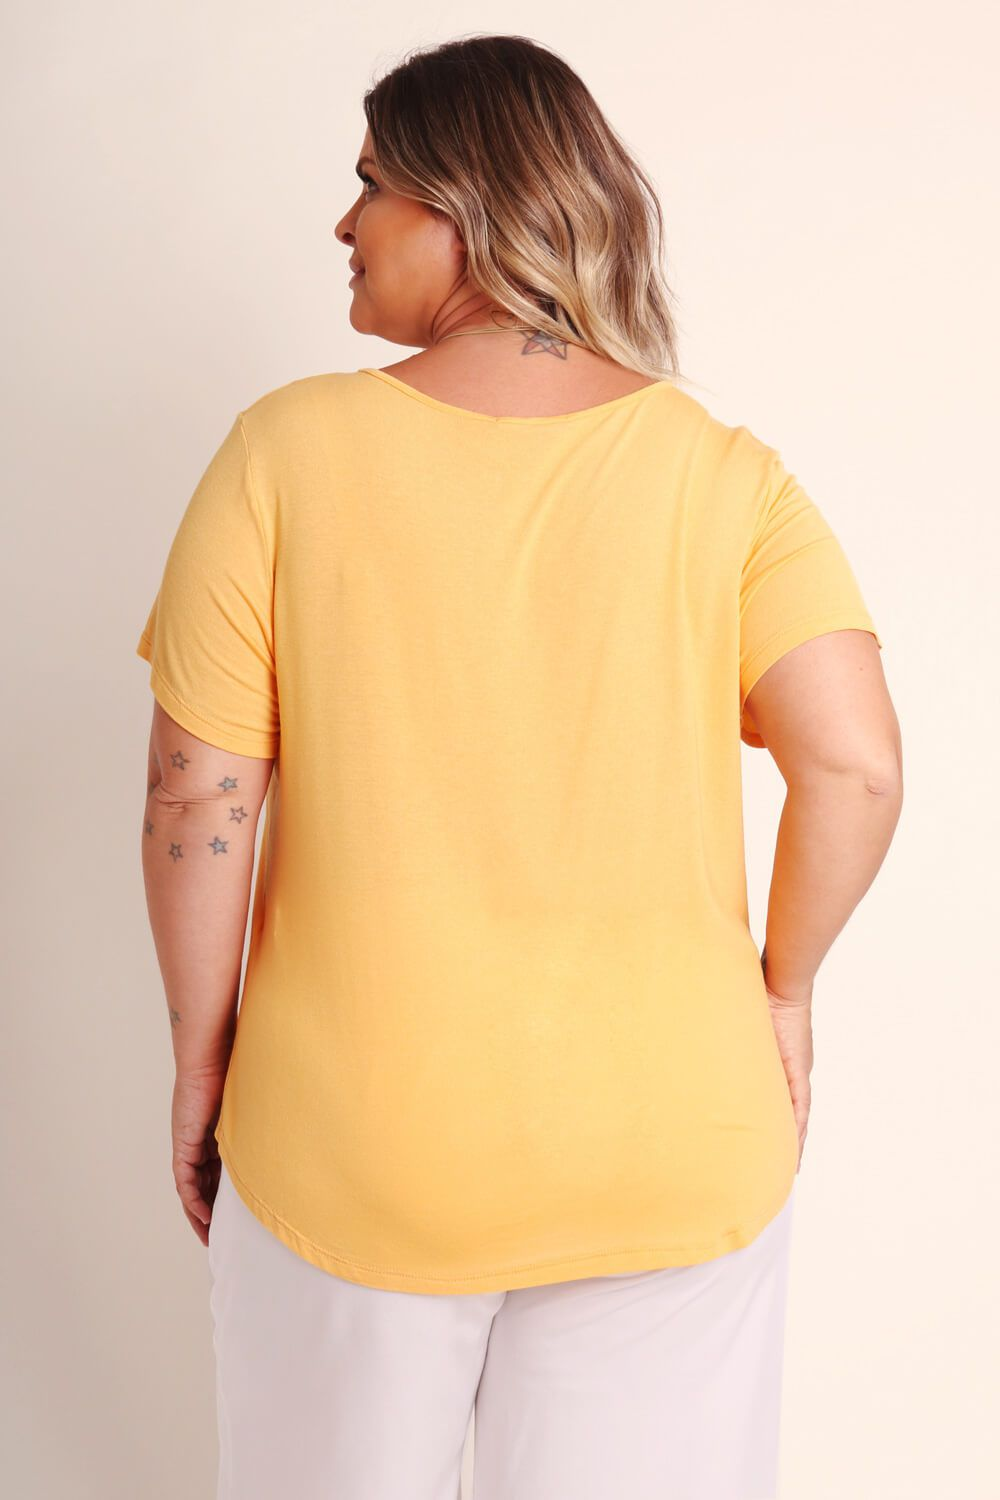 CAMISETA KIT PLUS SIZE AMARELA